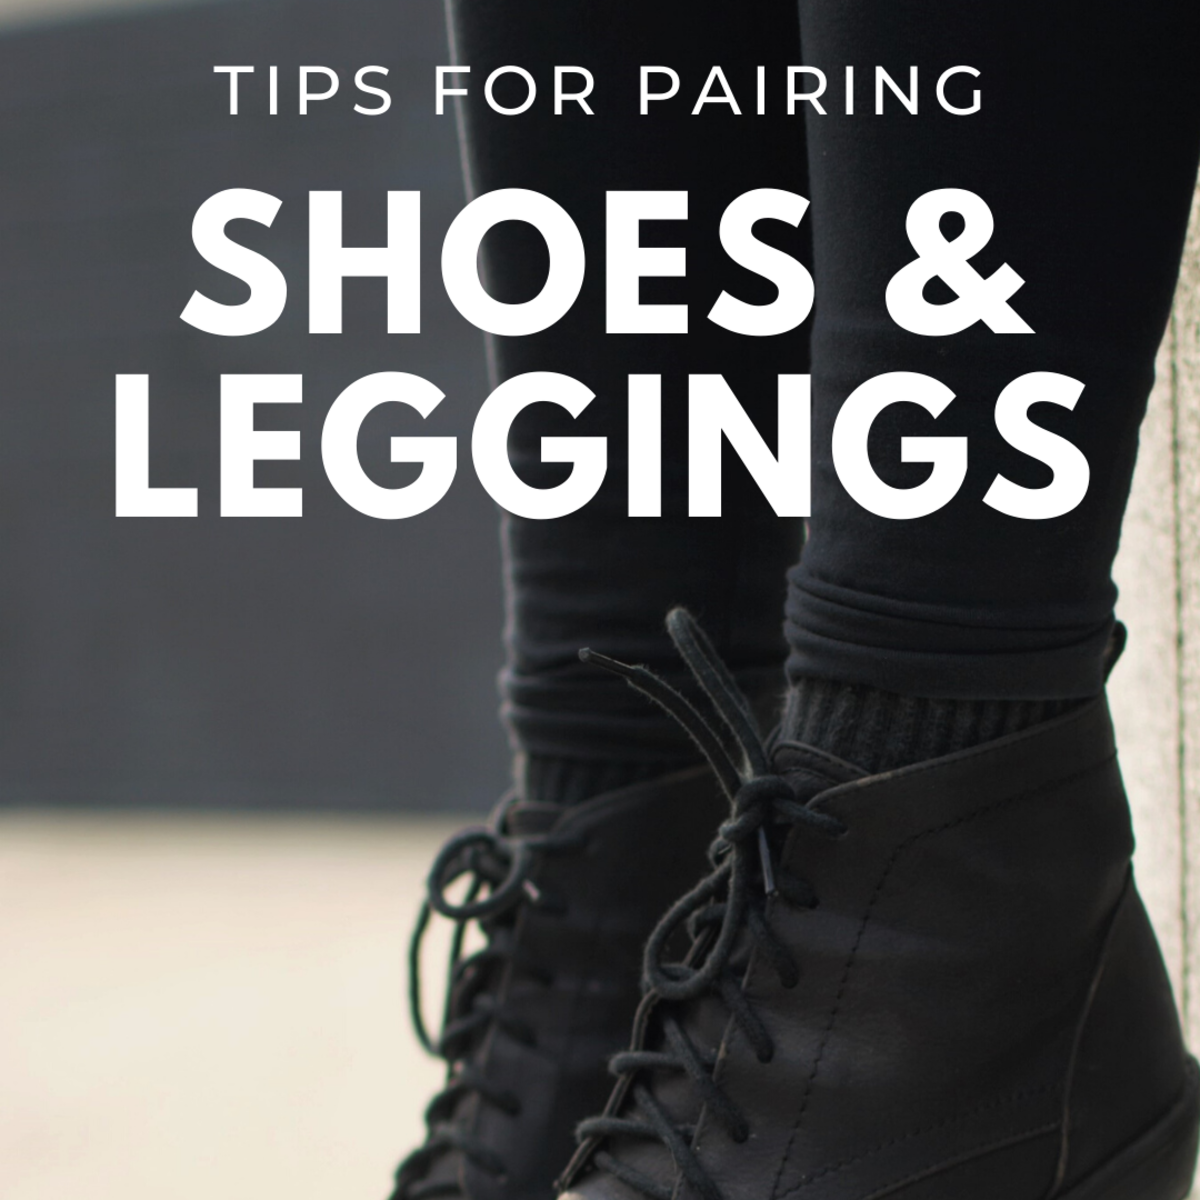 What Style of Shoes to Wear With Leggings